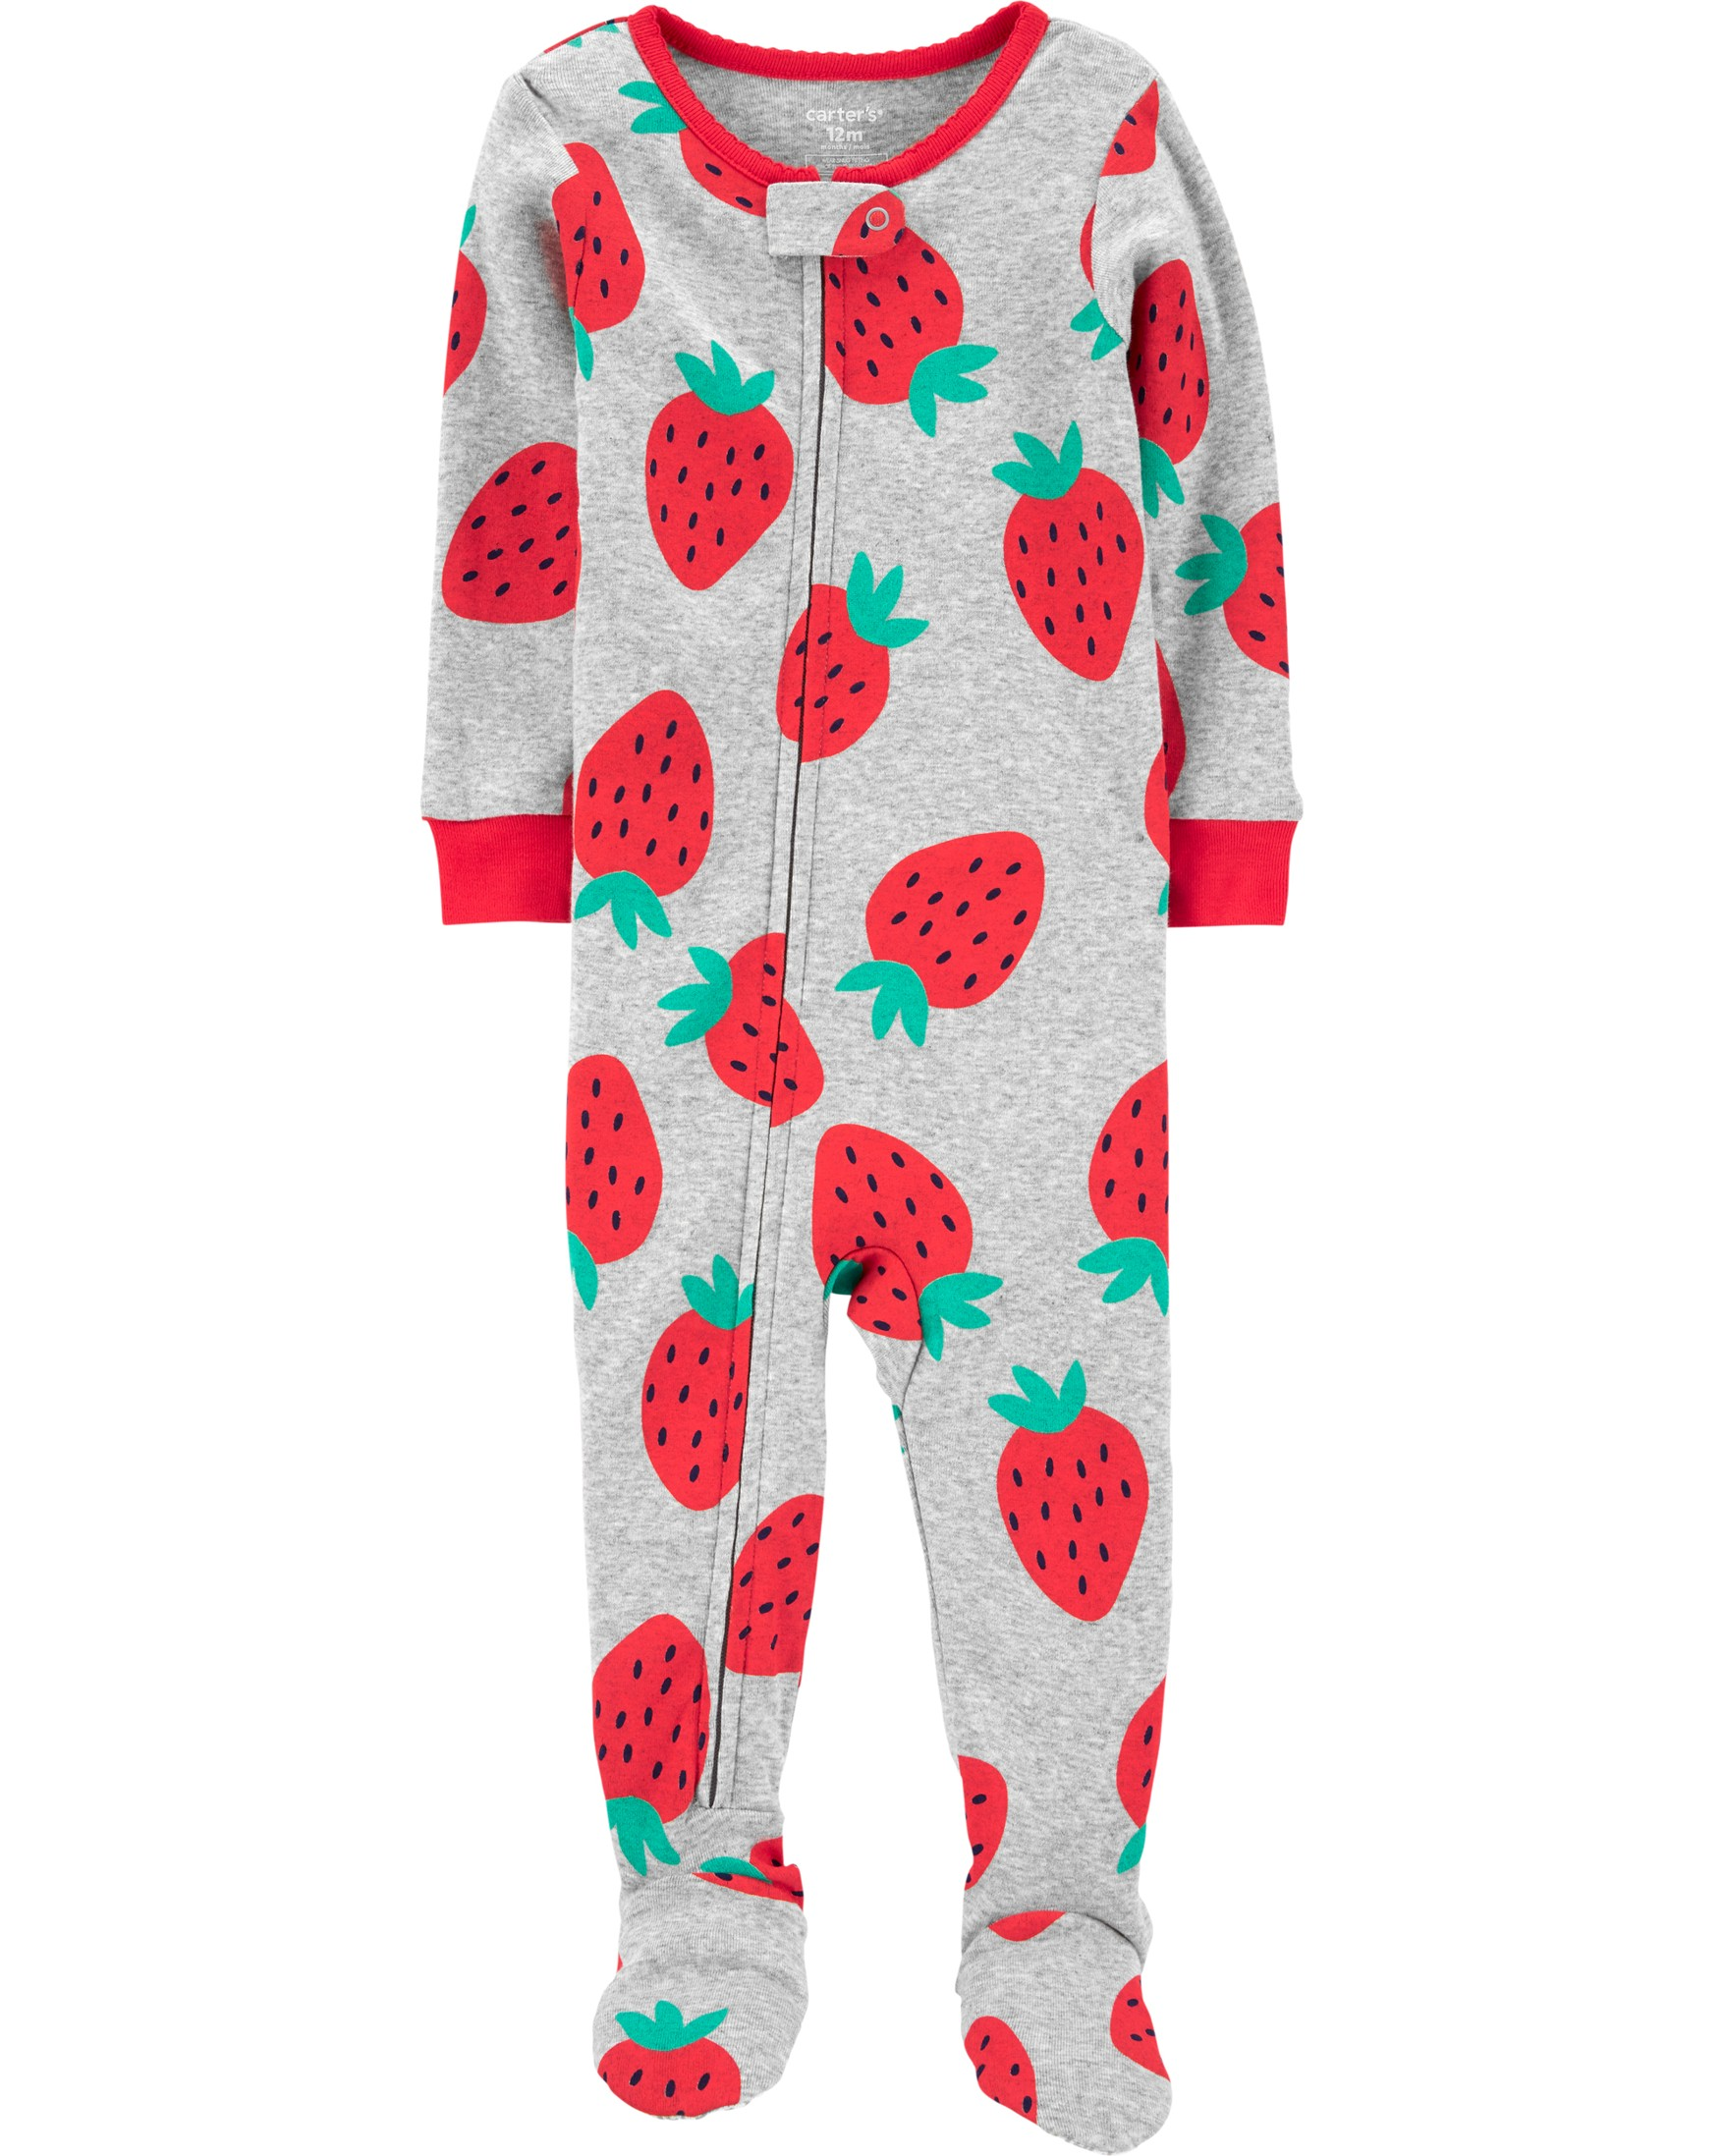 CARTERS Overal zip Strawberry dívka 12m vel. 80